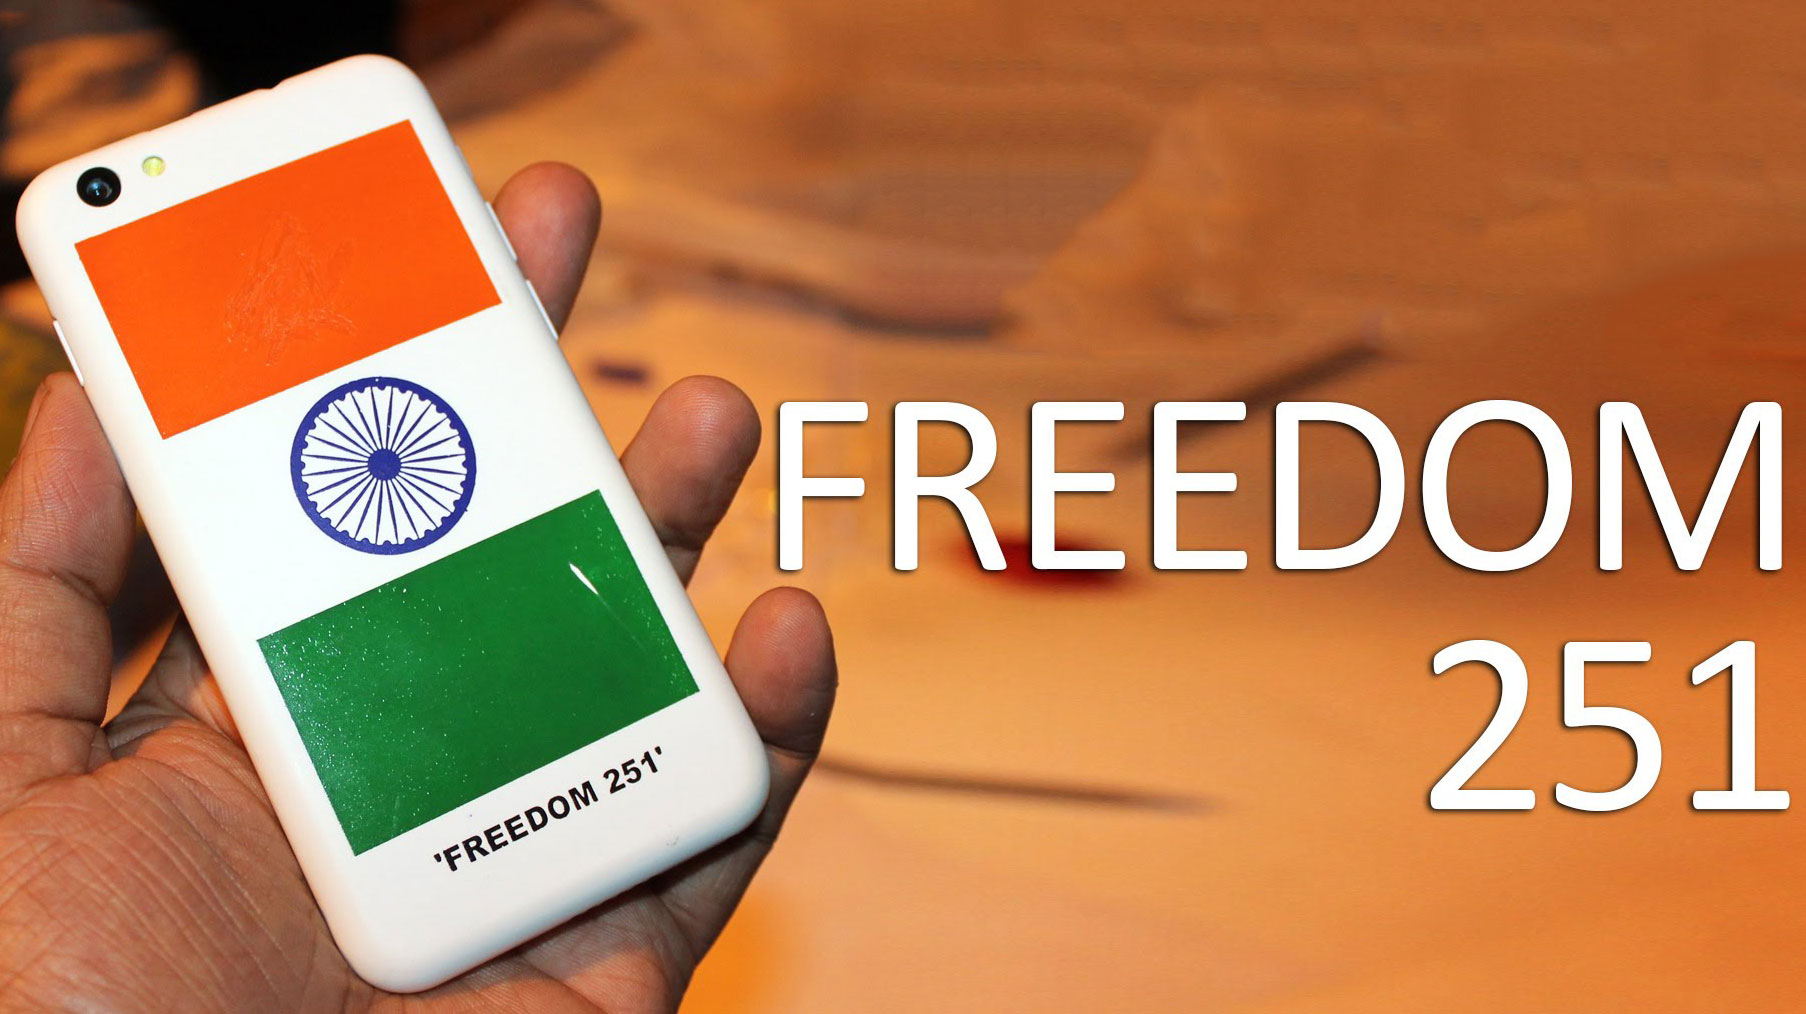 Freedom 251 Now To Be Available Through Cash On Delivery Ringing Bells Begins Refunding Smart 101 Orders As Well Phonebunch